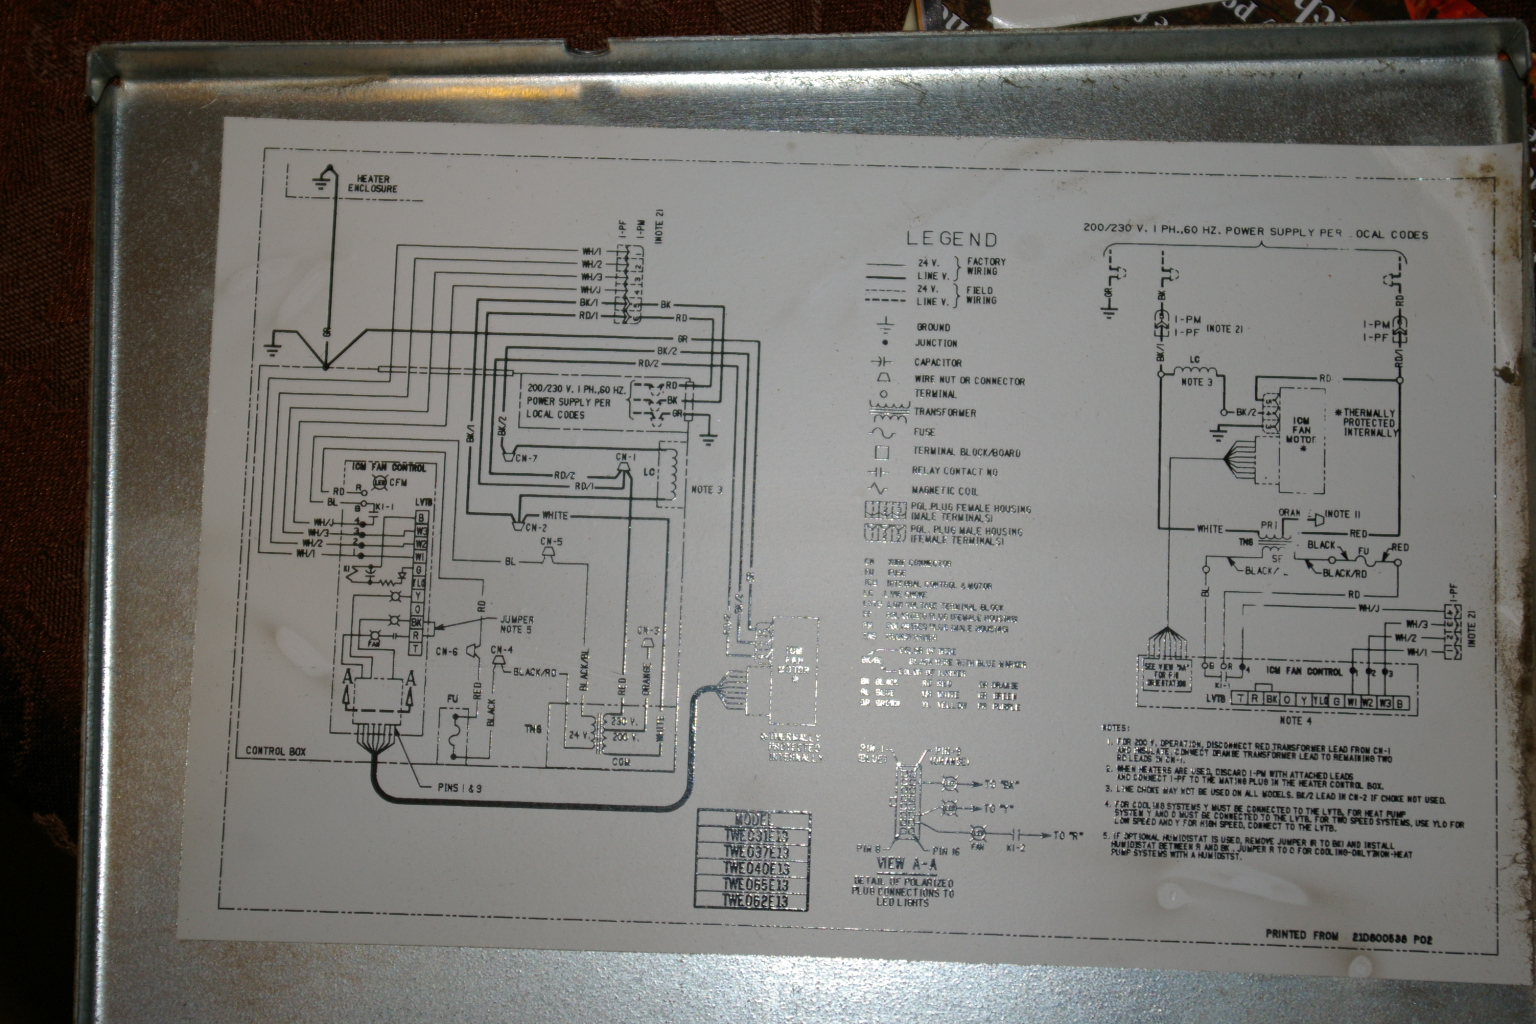 Lennox Air Handler Wiring Diagram Will Be A Thing Schematic Trane Split System Get Free Image About Old Furnace Heat Pump